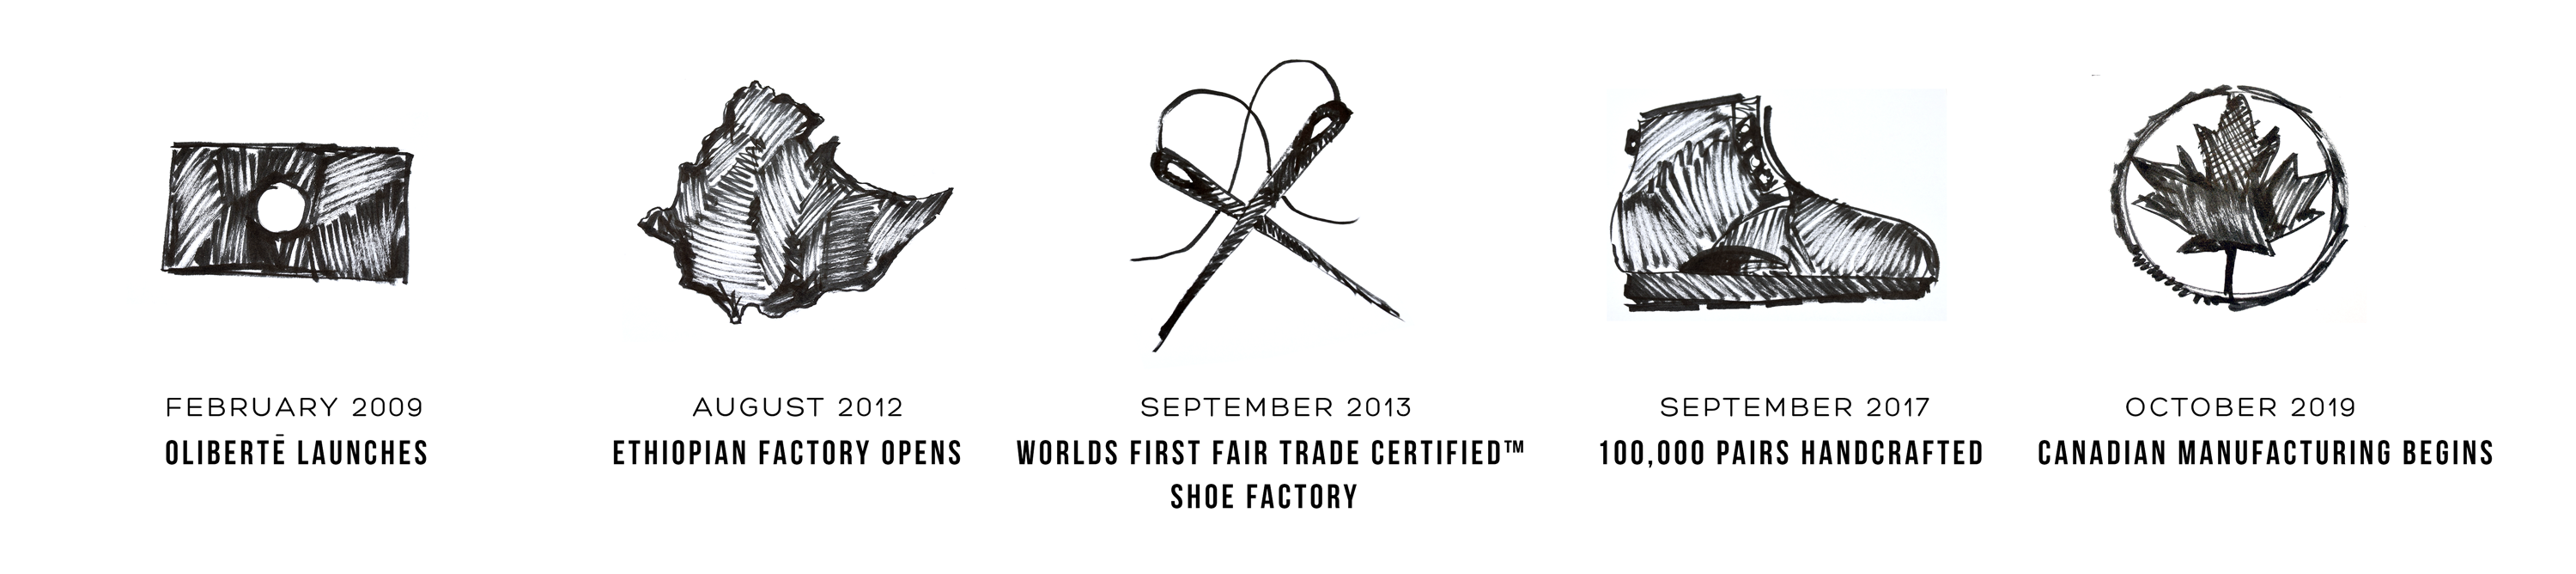 made in canada ethiopian factory handcrafted premium leather canadian made boots footwear